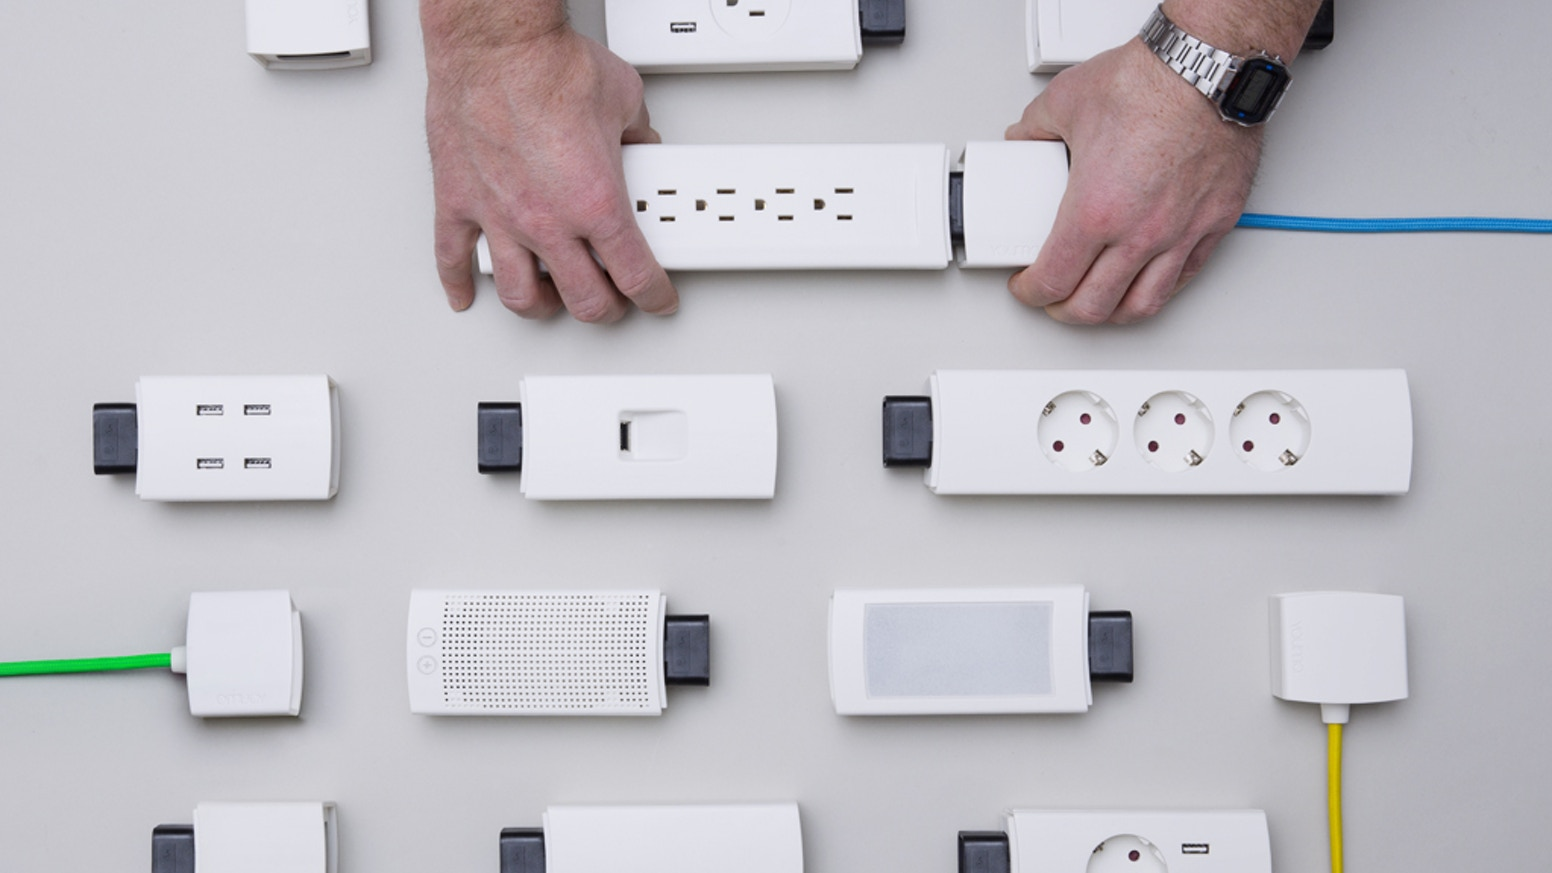 Youmo Your Smart Modular Power Strip By Good Gadgets Kickstarter Wiring Up A French Plug Multi Charging That Is Smarter Stylish And Designed For You